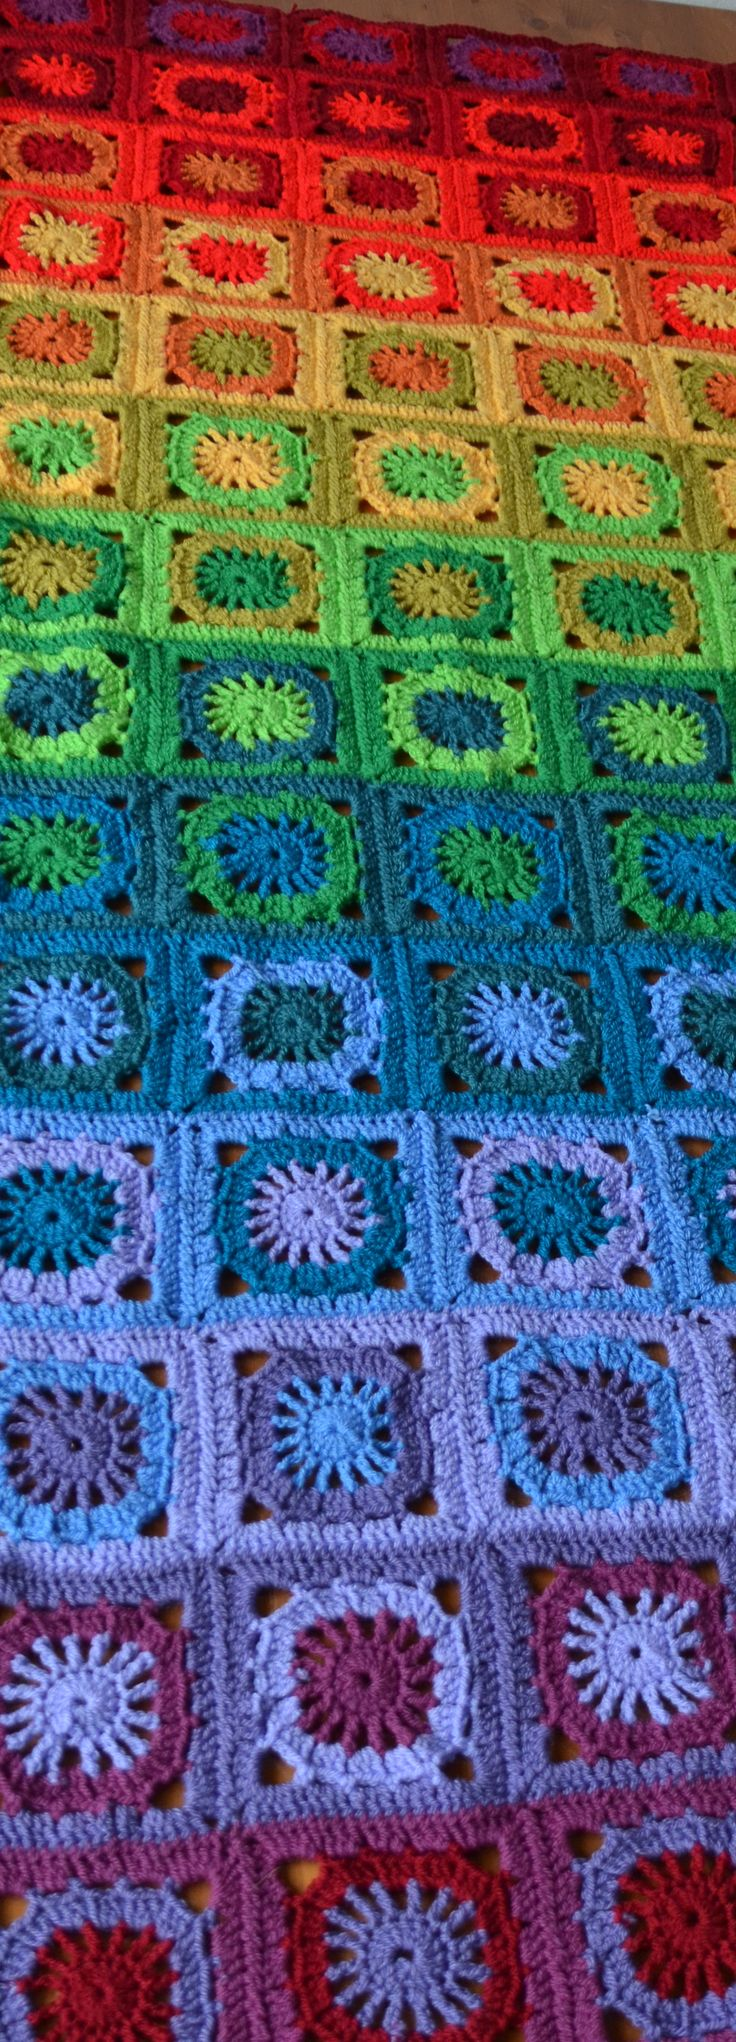 CAL Rainbow Blanket pattern out of granny squares